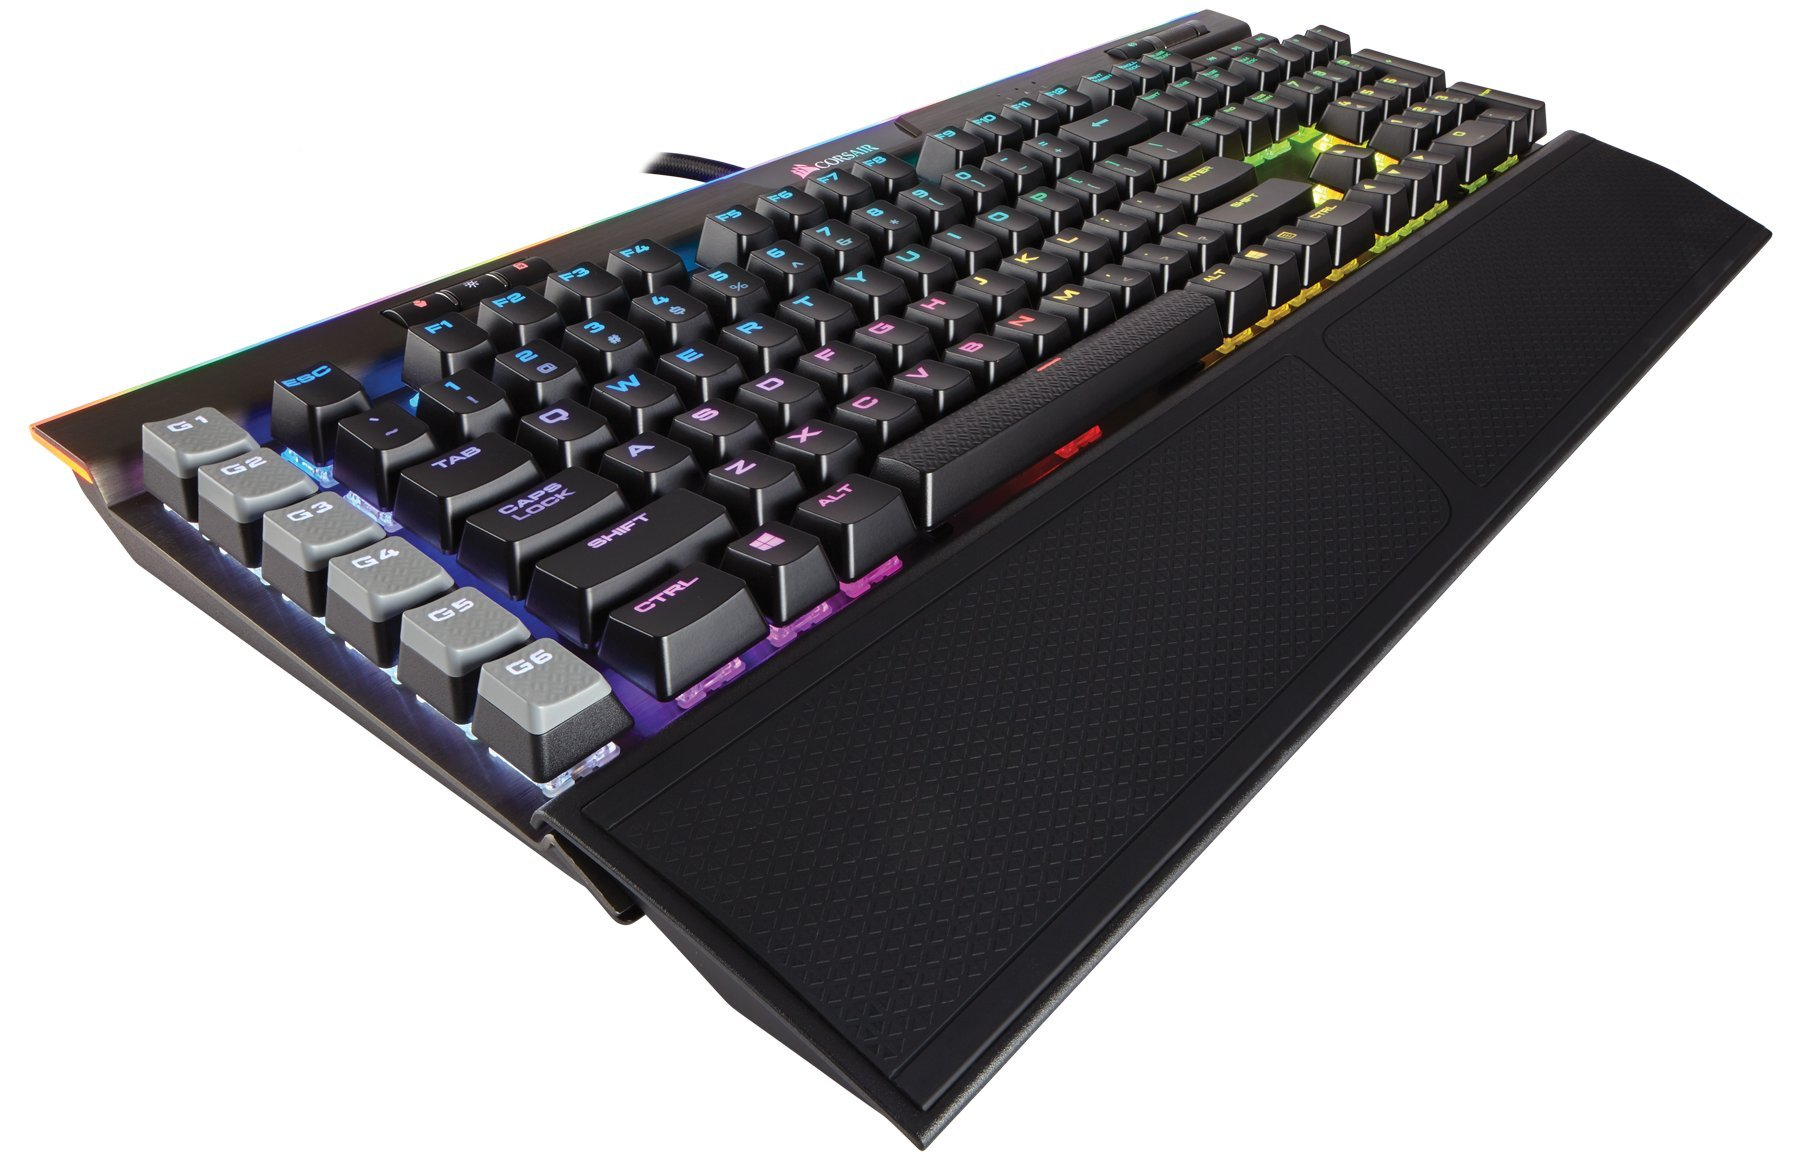 CORSAIR K95 RGB PLATINUM Mechanical Gaming Keyboard - USB Passthrough & Media Controls - Fastest Cherry MX Speed - RGB LED Backlit - Aluminum Finish